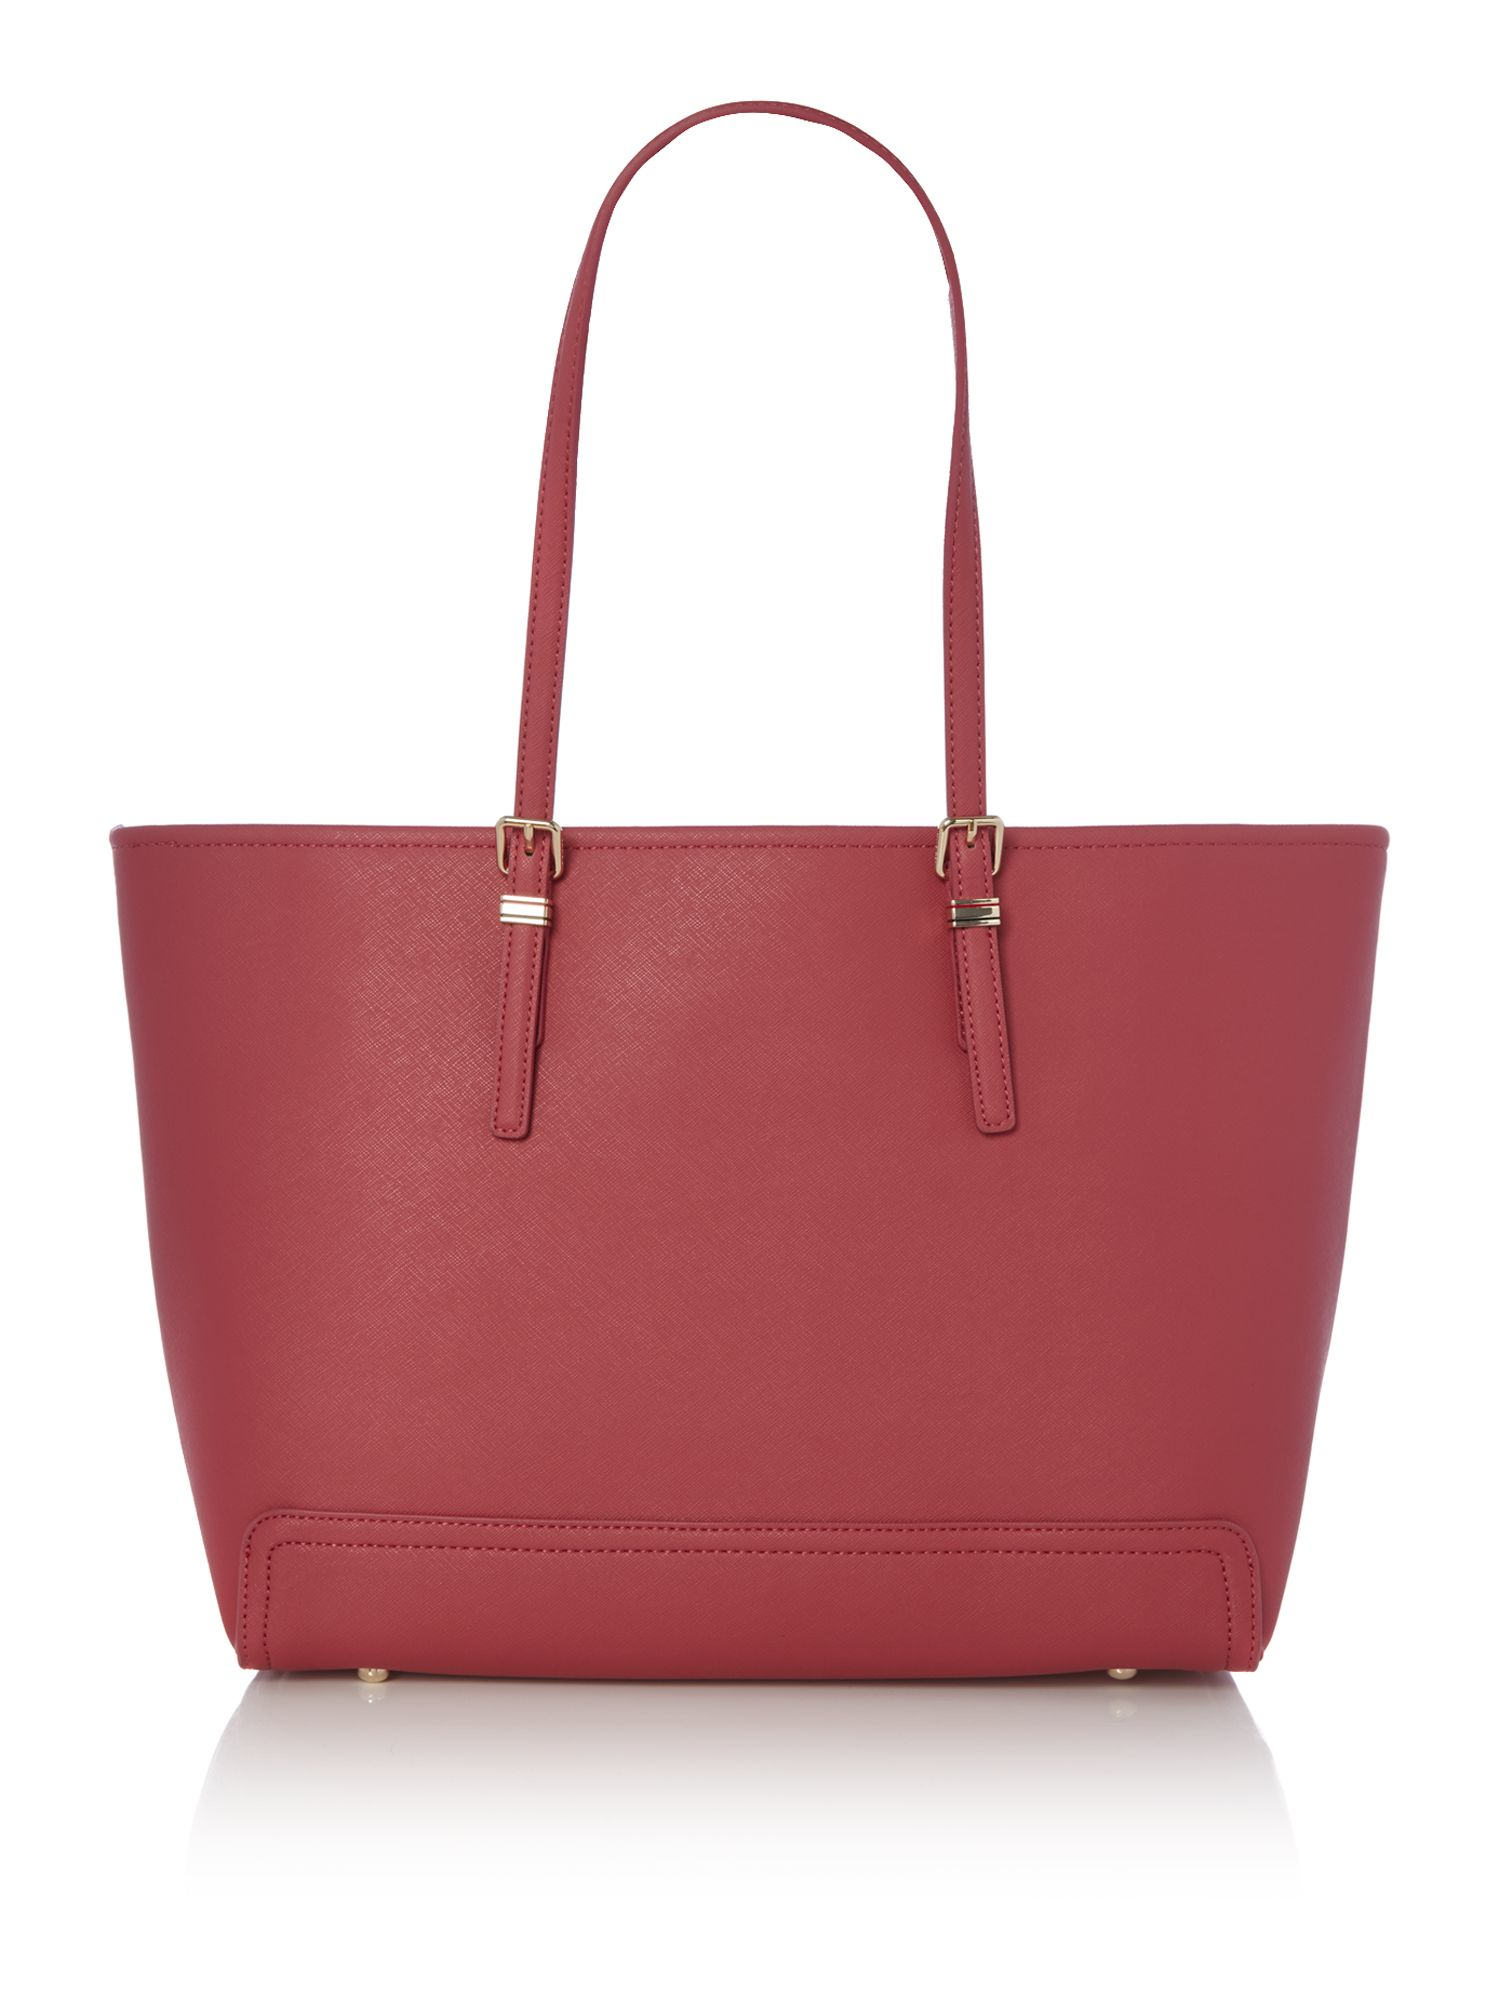 Pink Tote Bags: coolzloadwok.ga - Your Online Shop By Style Store! Get 5% in rewards with Club O!